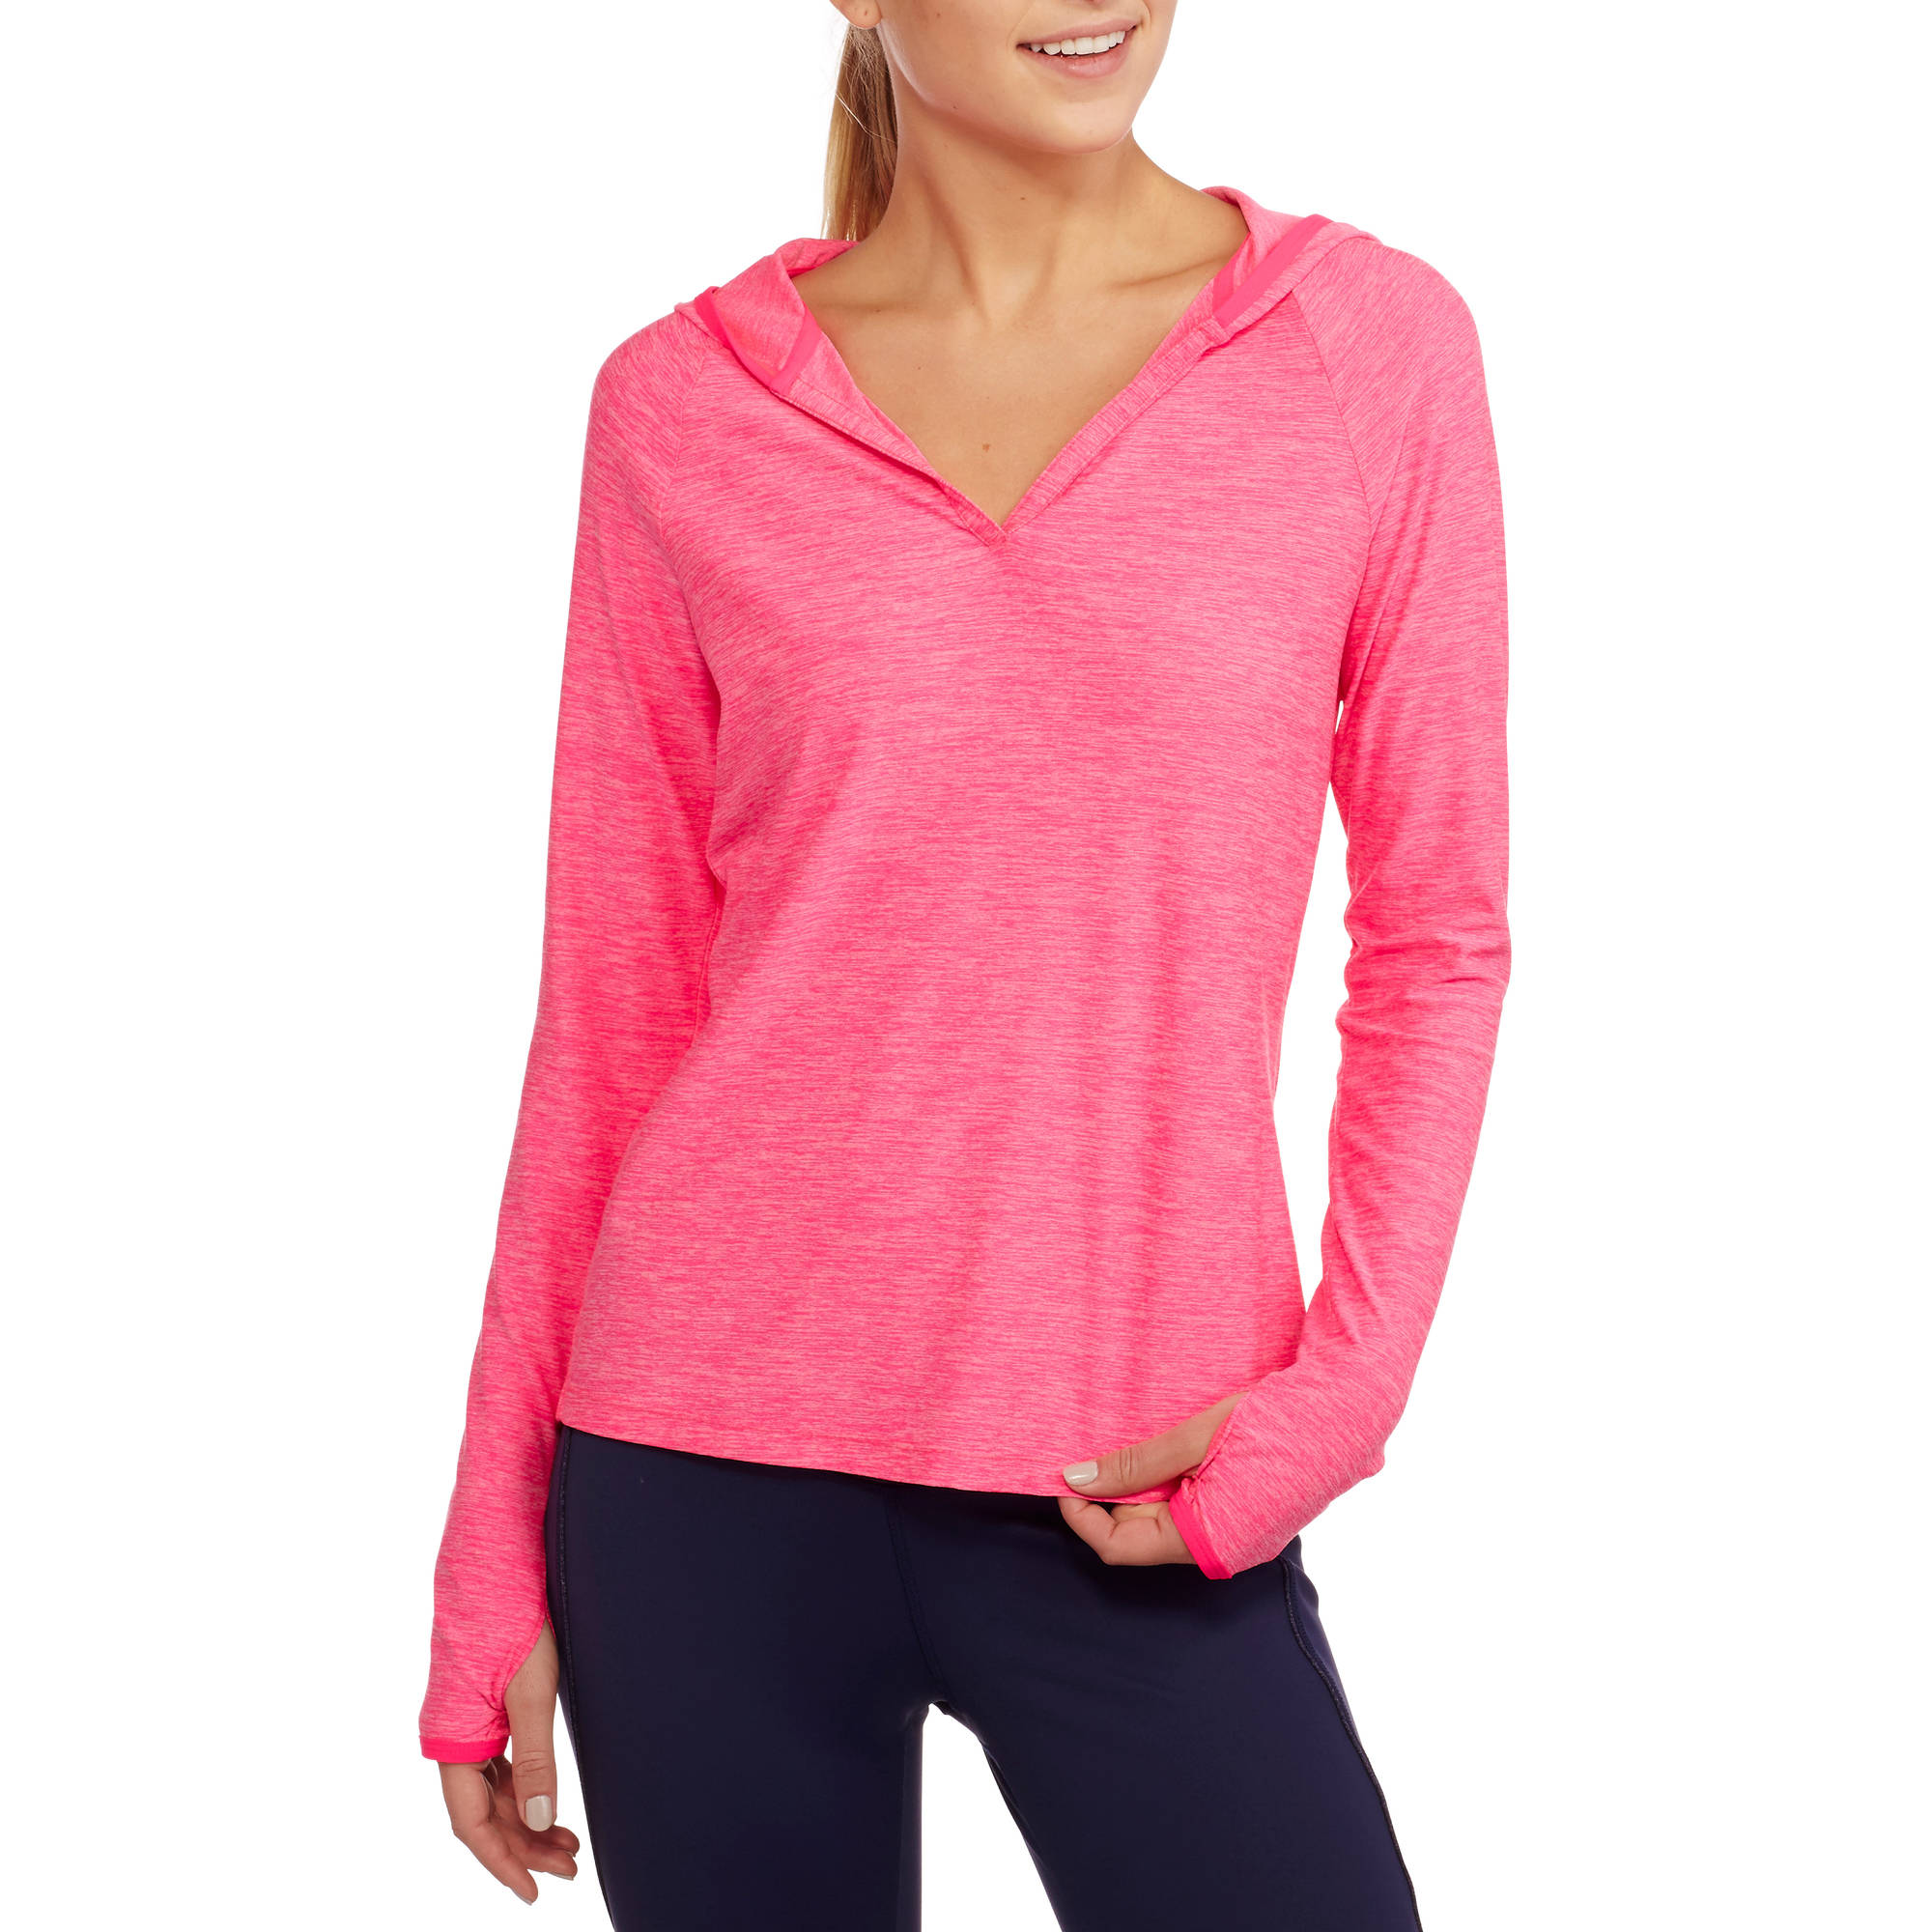 Danskin Now Women's Active Lightweight Layering Hoodie